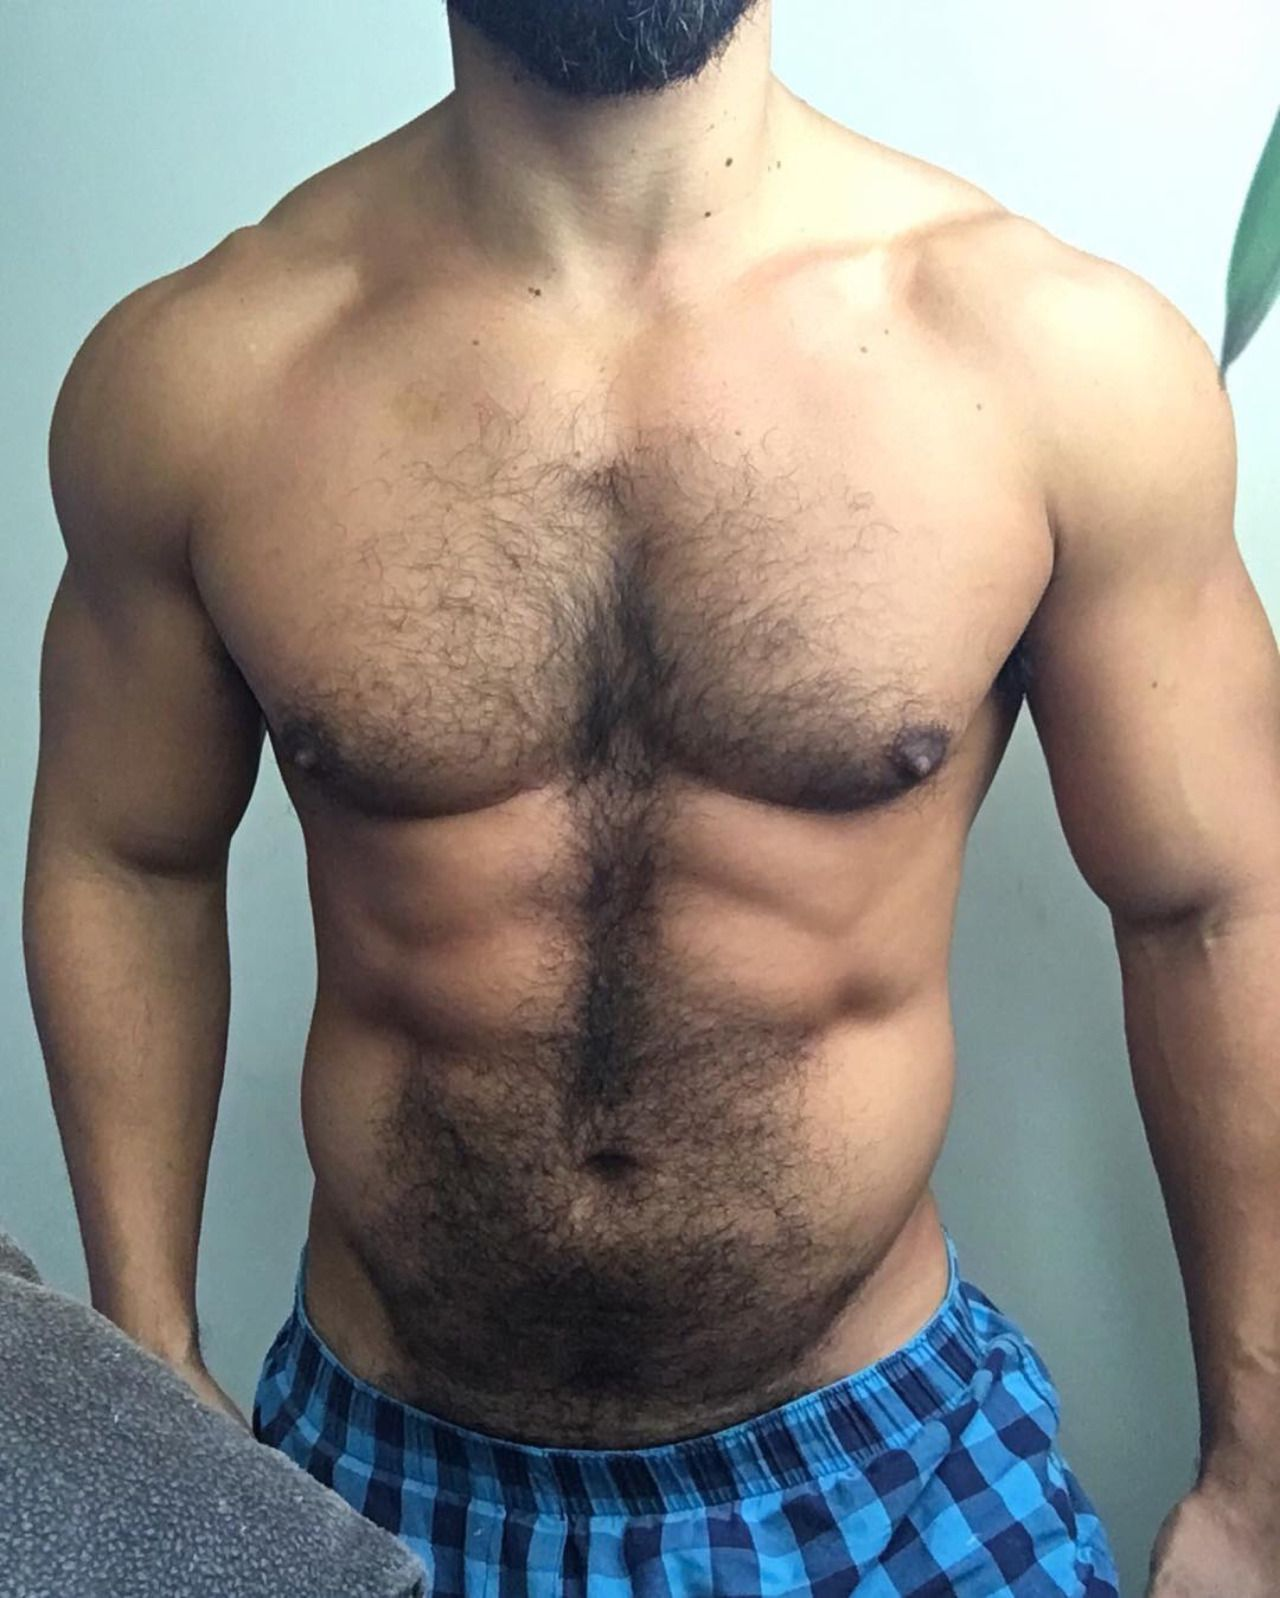 pubes and Hairy pits